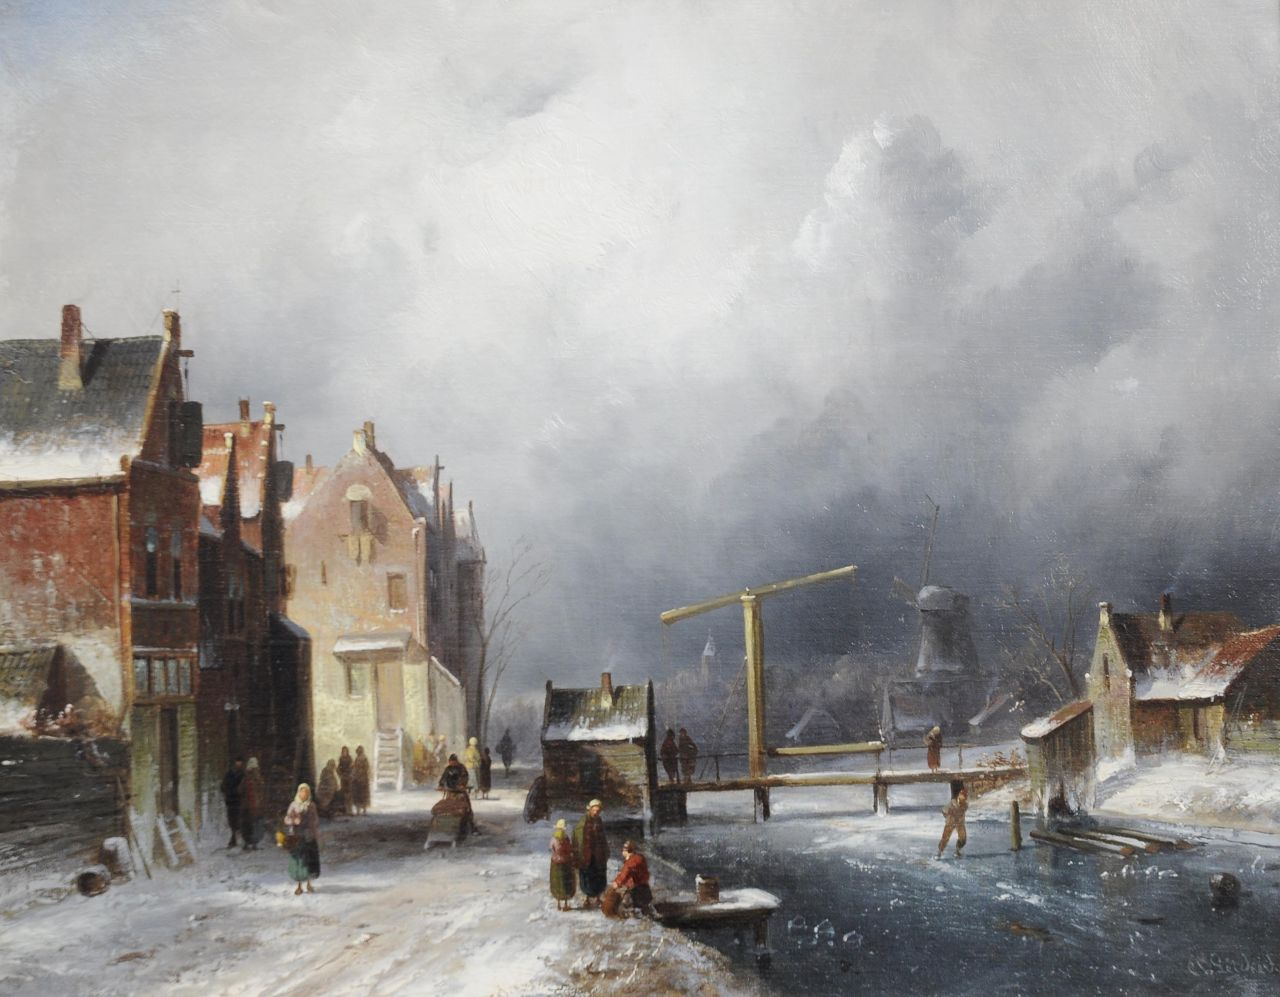 Leickert C.H.J.  | 'Charles' Henri Joseph Leickert, A Dutch town in winter, oil on canvas 35.2 x 44.4 cm, signed l.r.